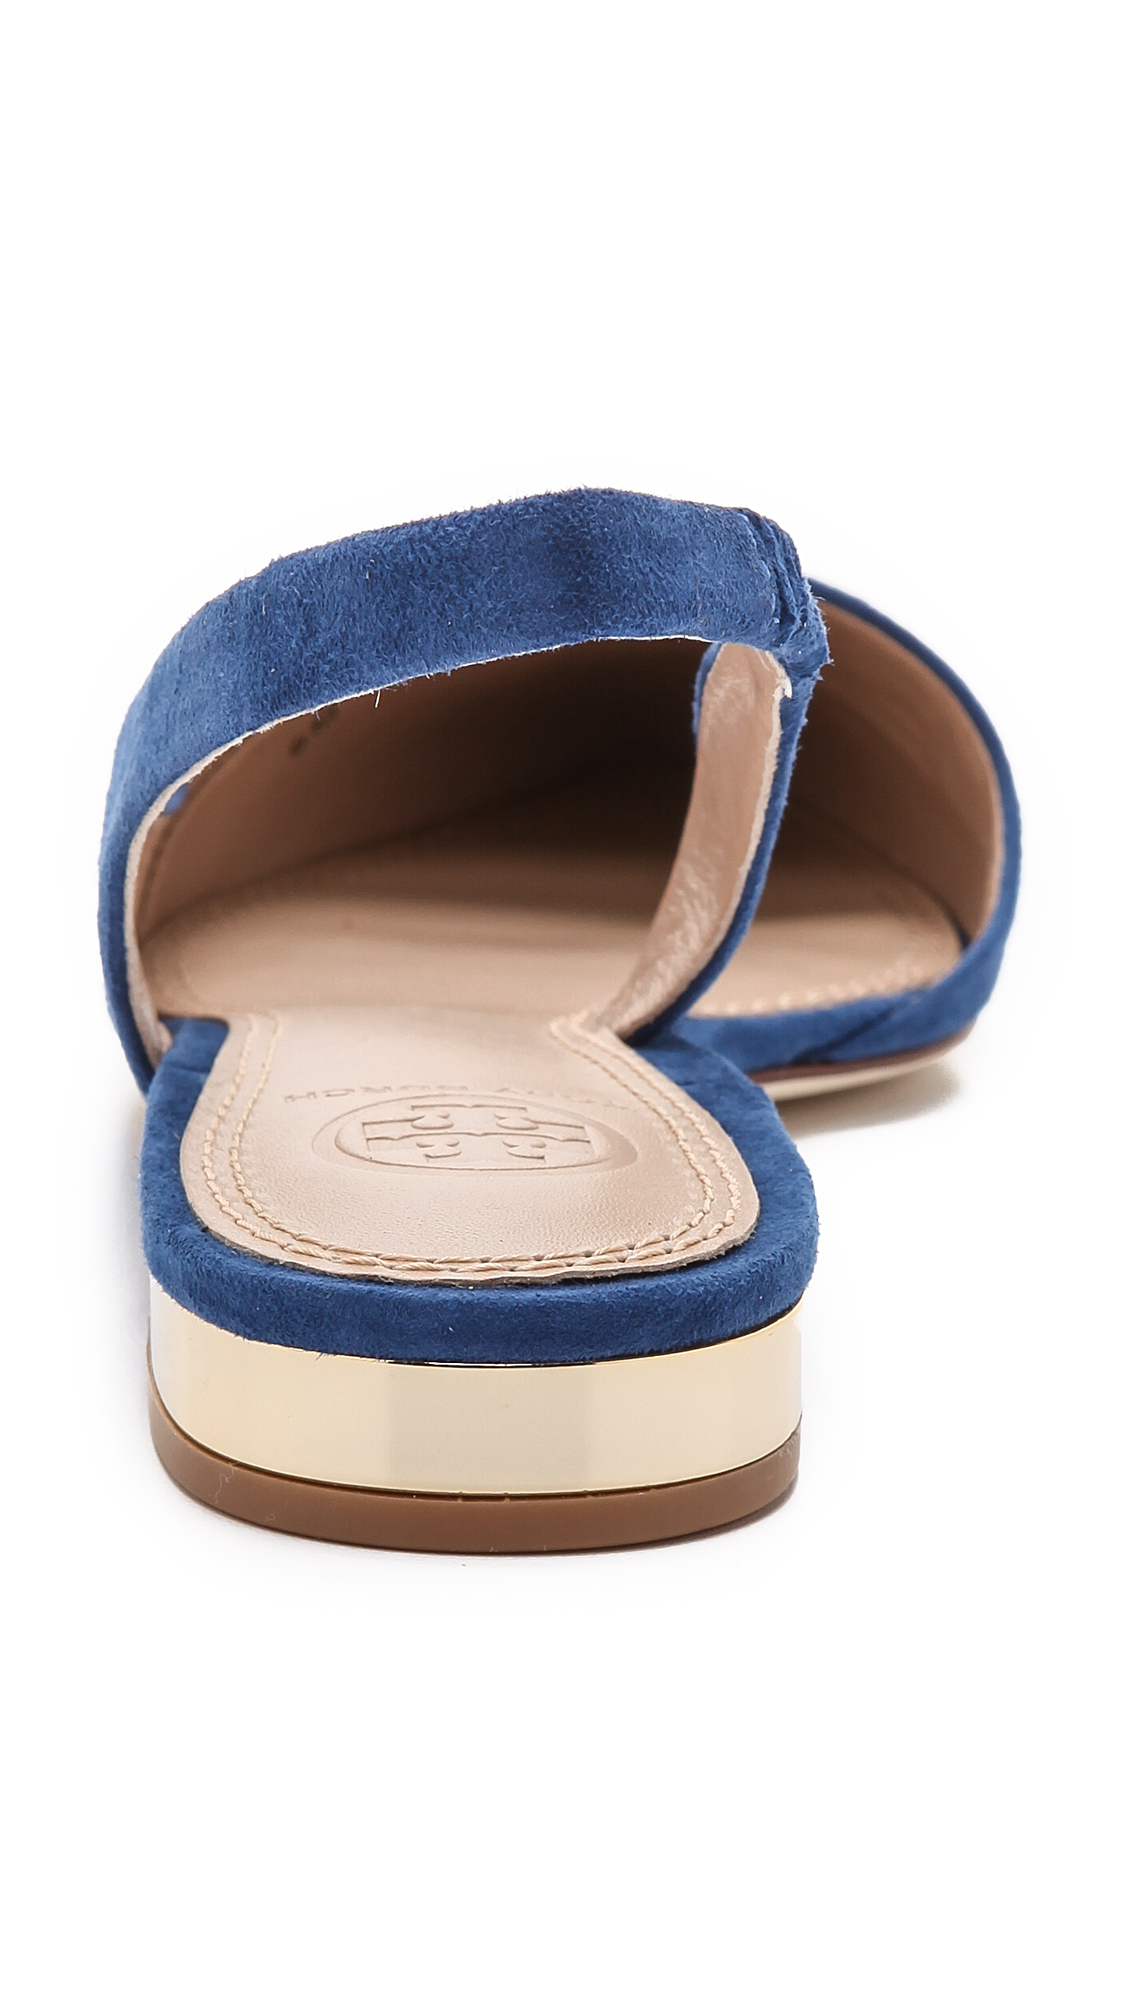 bcc8e874979dd4 Lyst - Tory Burch Pointed Toe Slingback Flats - Greek Blue in Blue